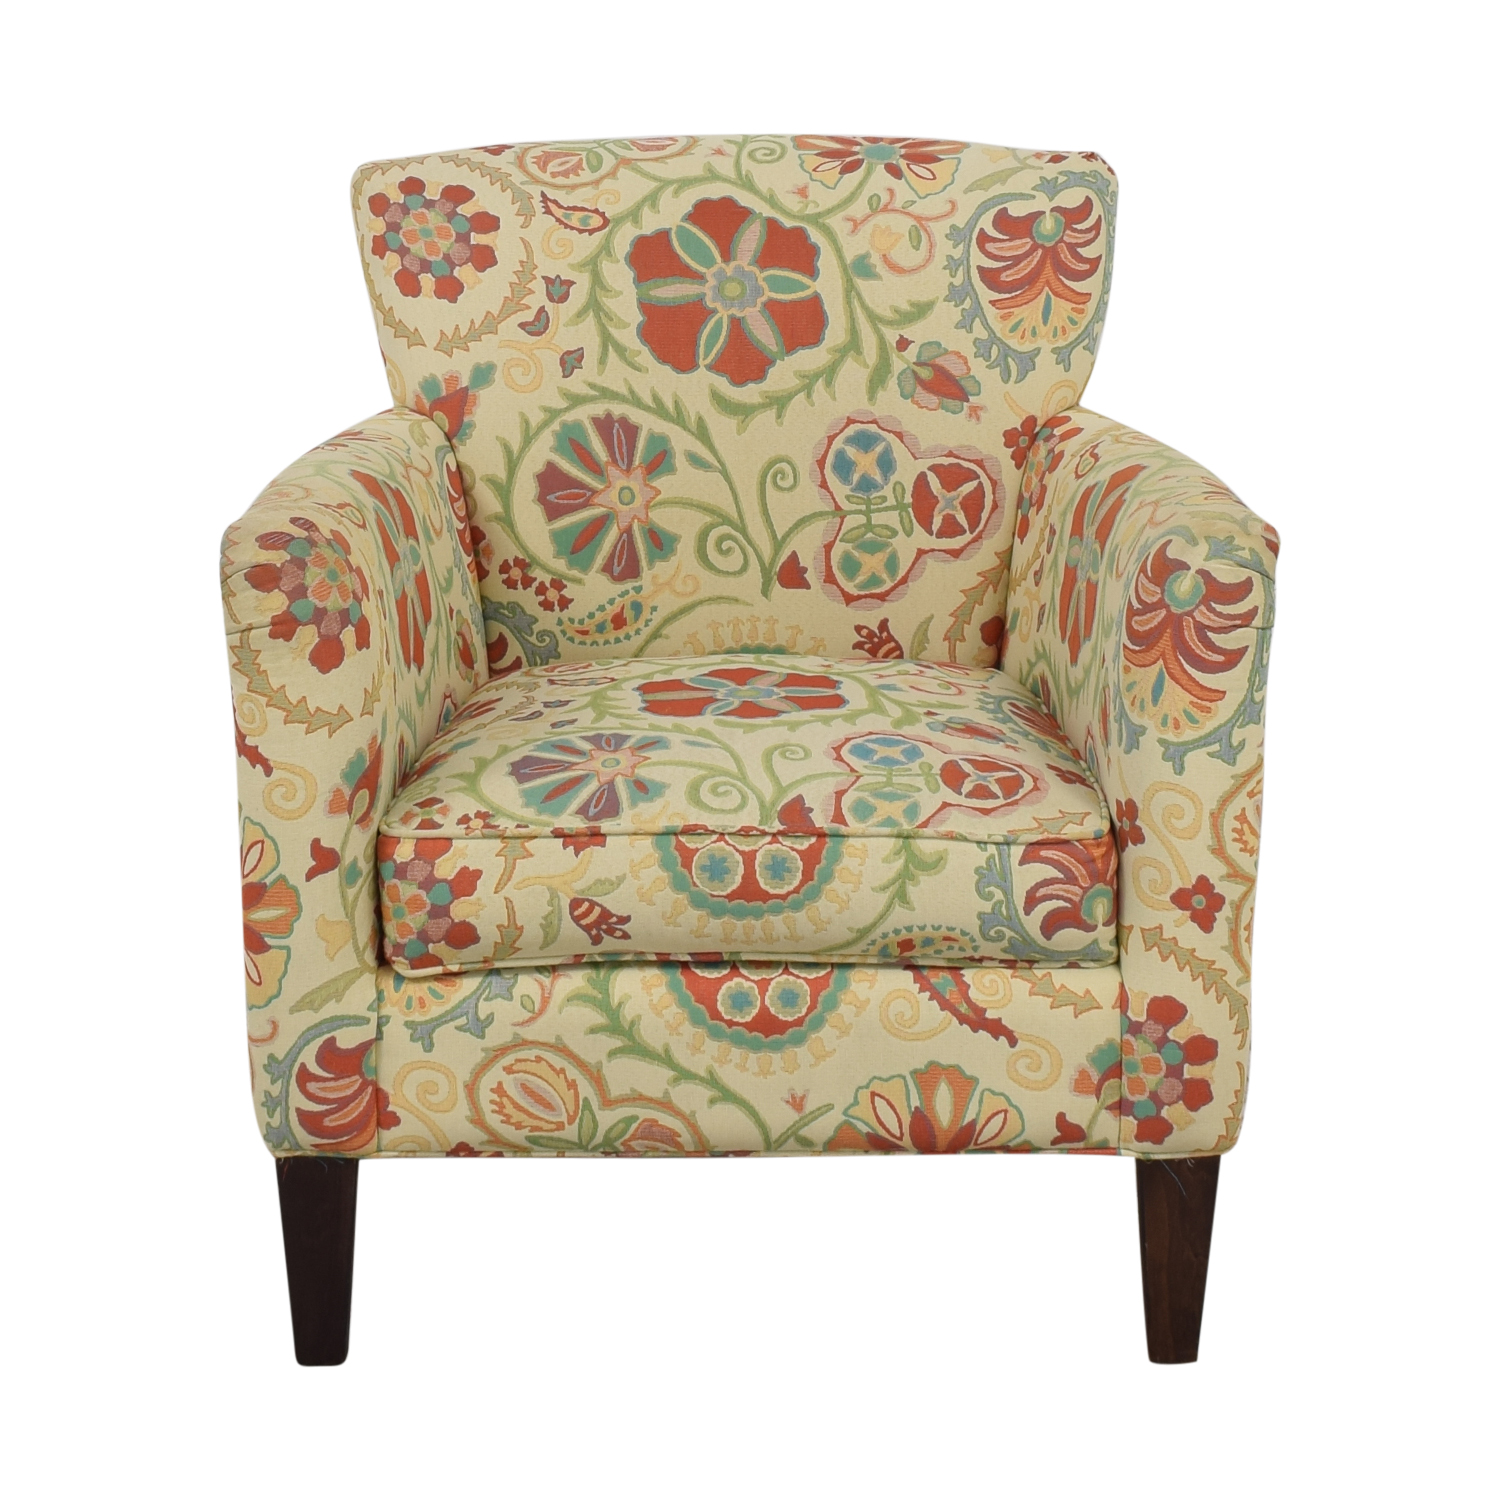 Crate & Barrel Upholstered Printed Armchair / Chairs